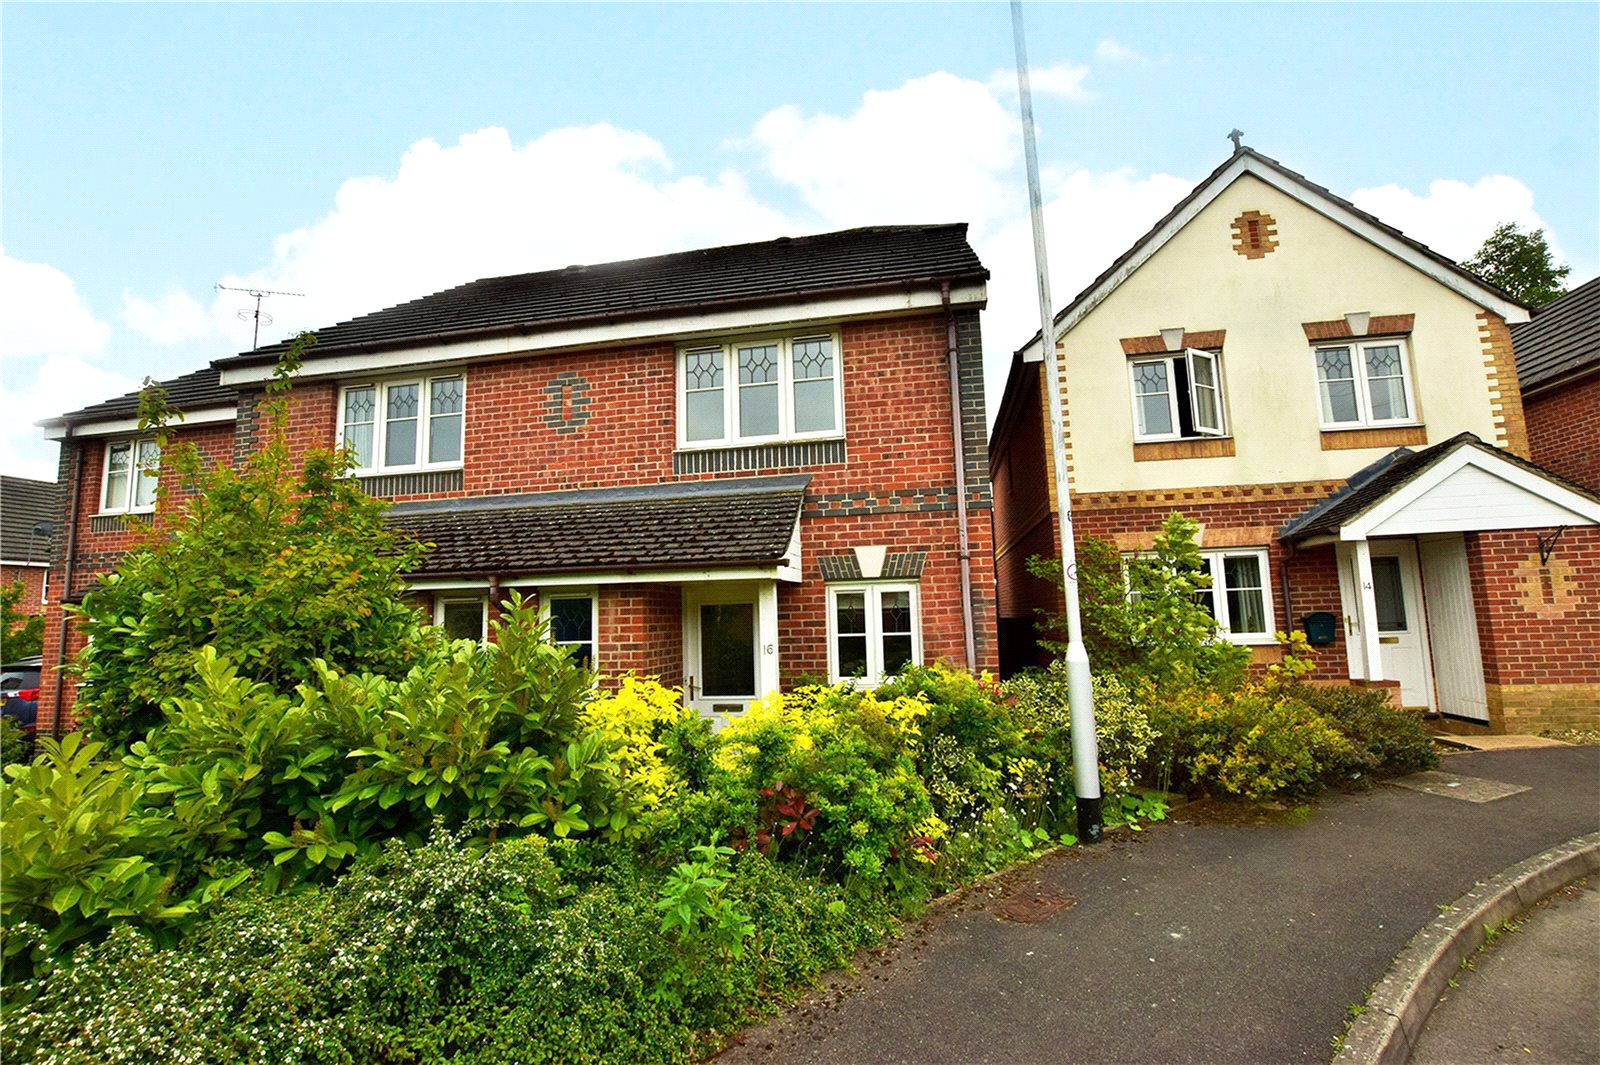 2 Bedrooms End Of Terrace House for sale in Amber Close, Earley, Reading, Berkshire, RG6